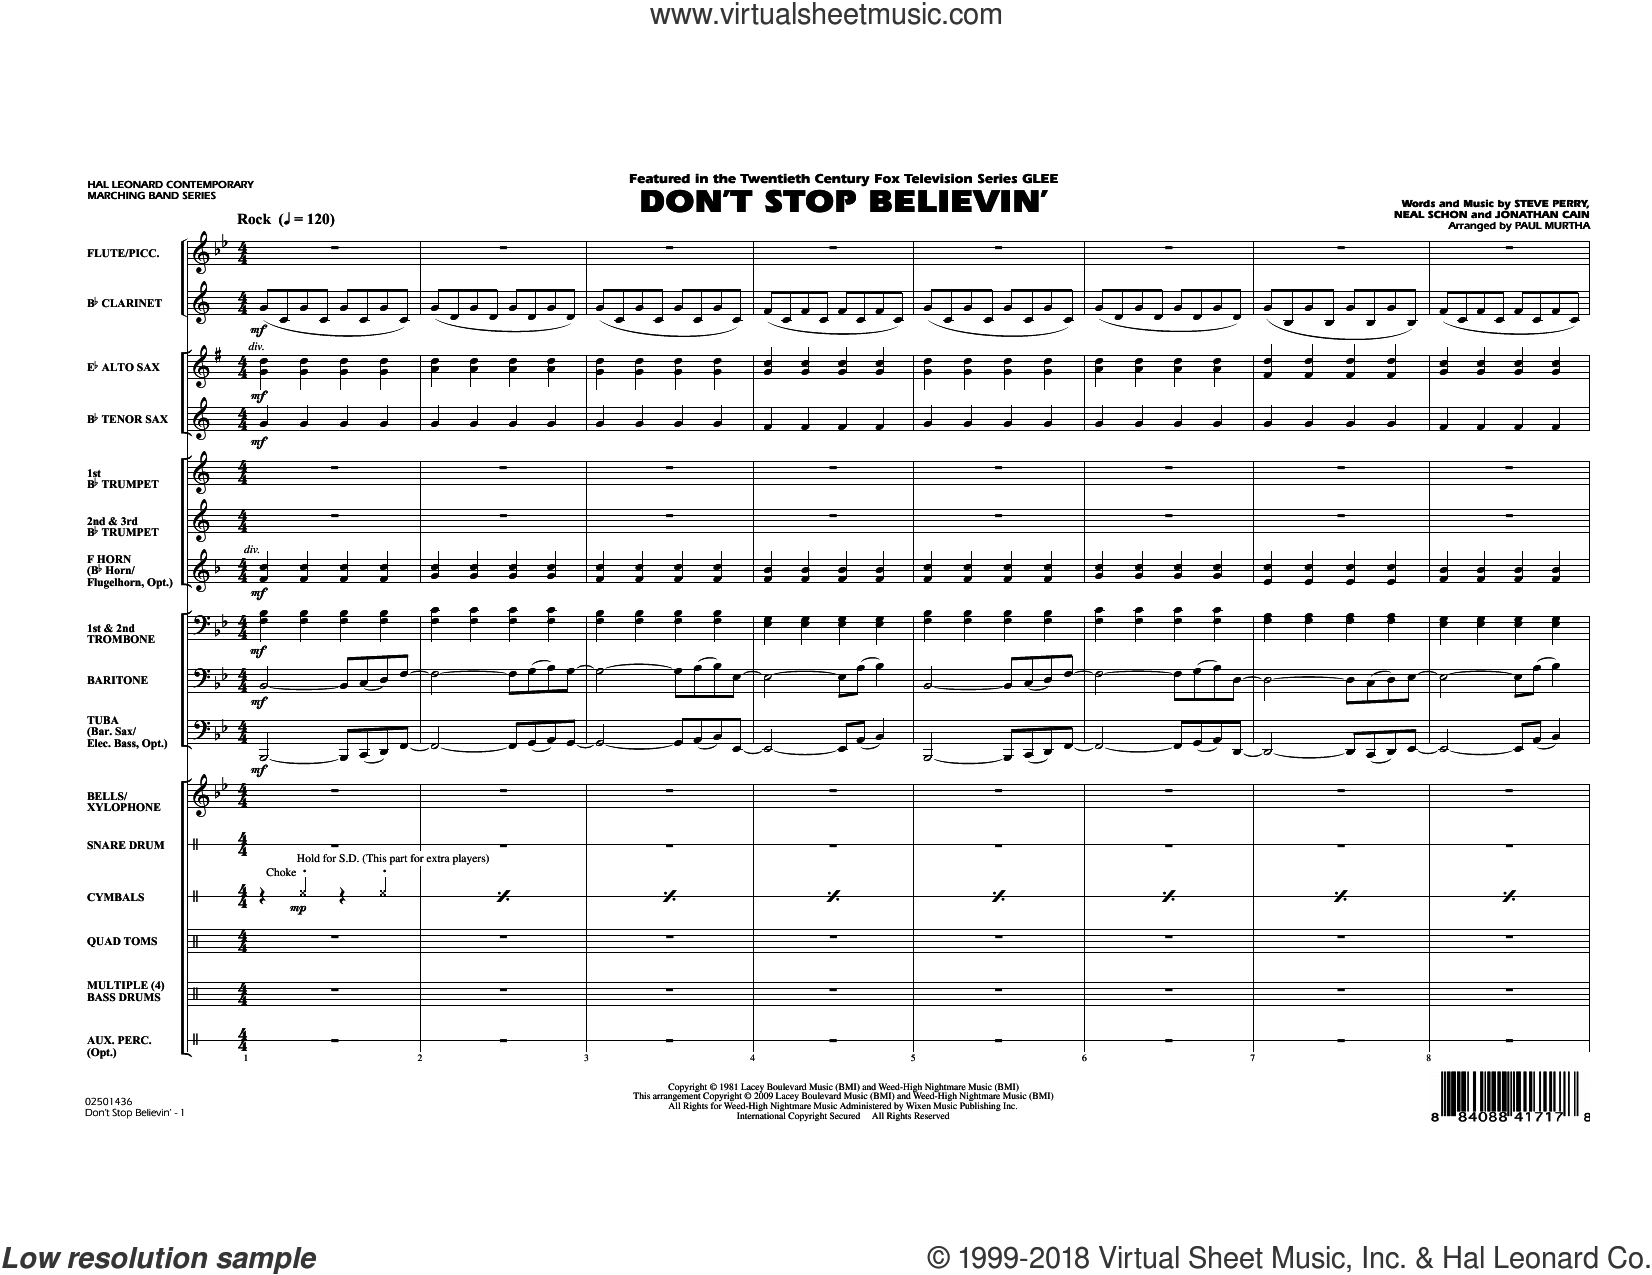 Don't Stop Believin' (COMPLETE) sheet music for marching band by Paul Murtha, Jonathan Cain, Journey, Miscellaneous, Neal Schon and Steve Perry, intermediate skill level